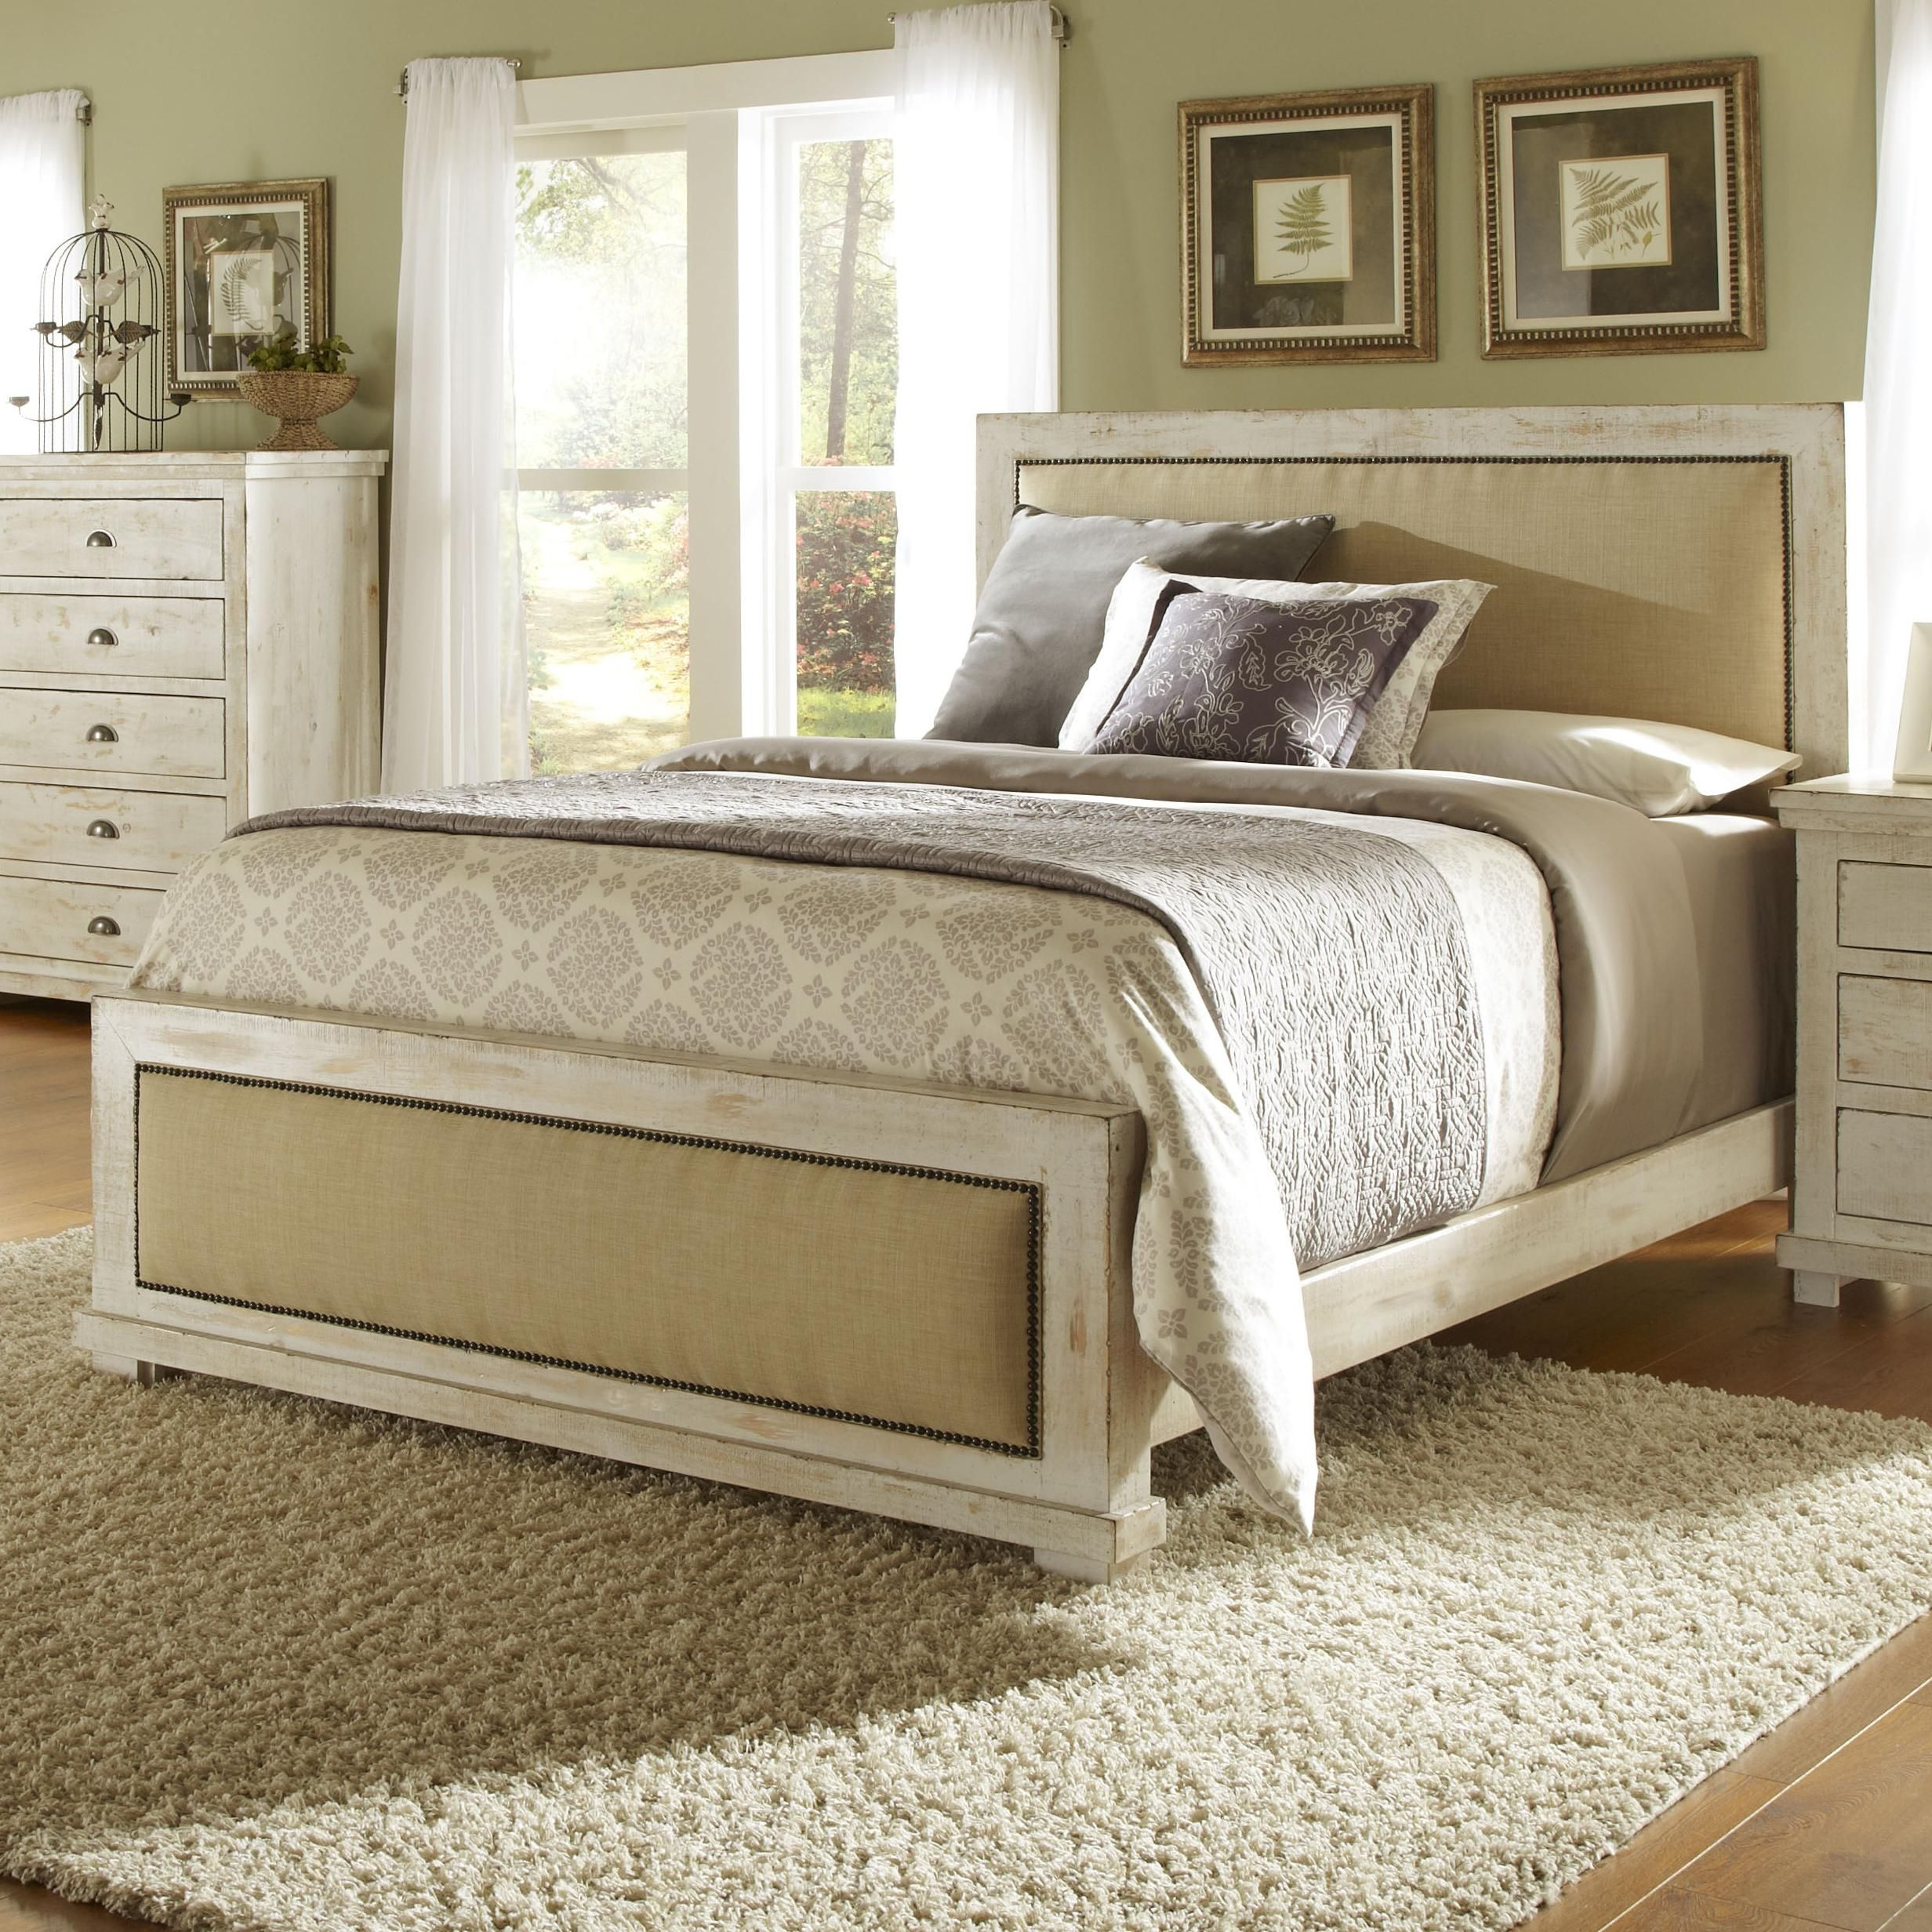 willow queen upholstered bed bed frames we sell pinterest